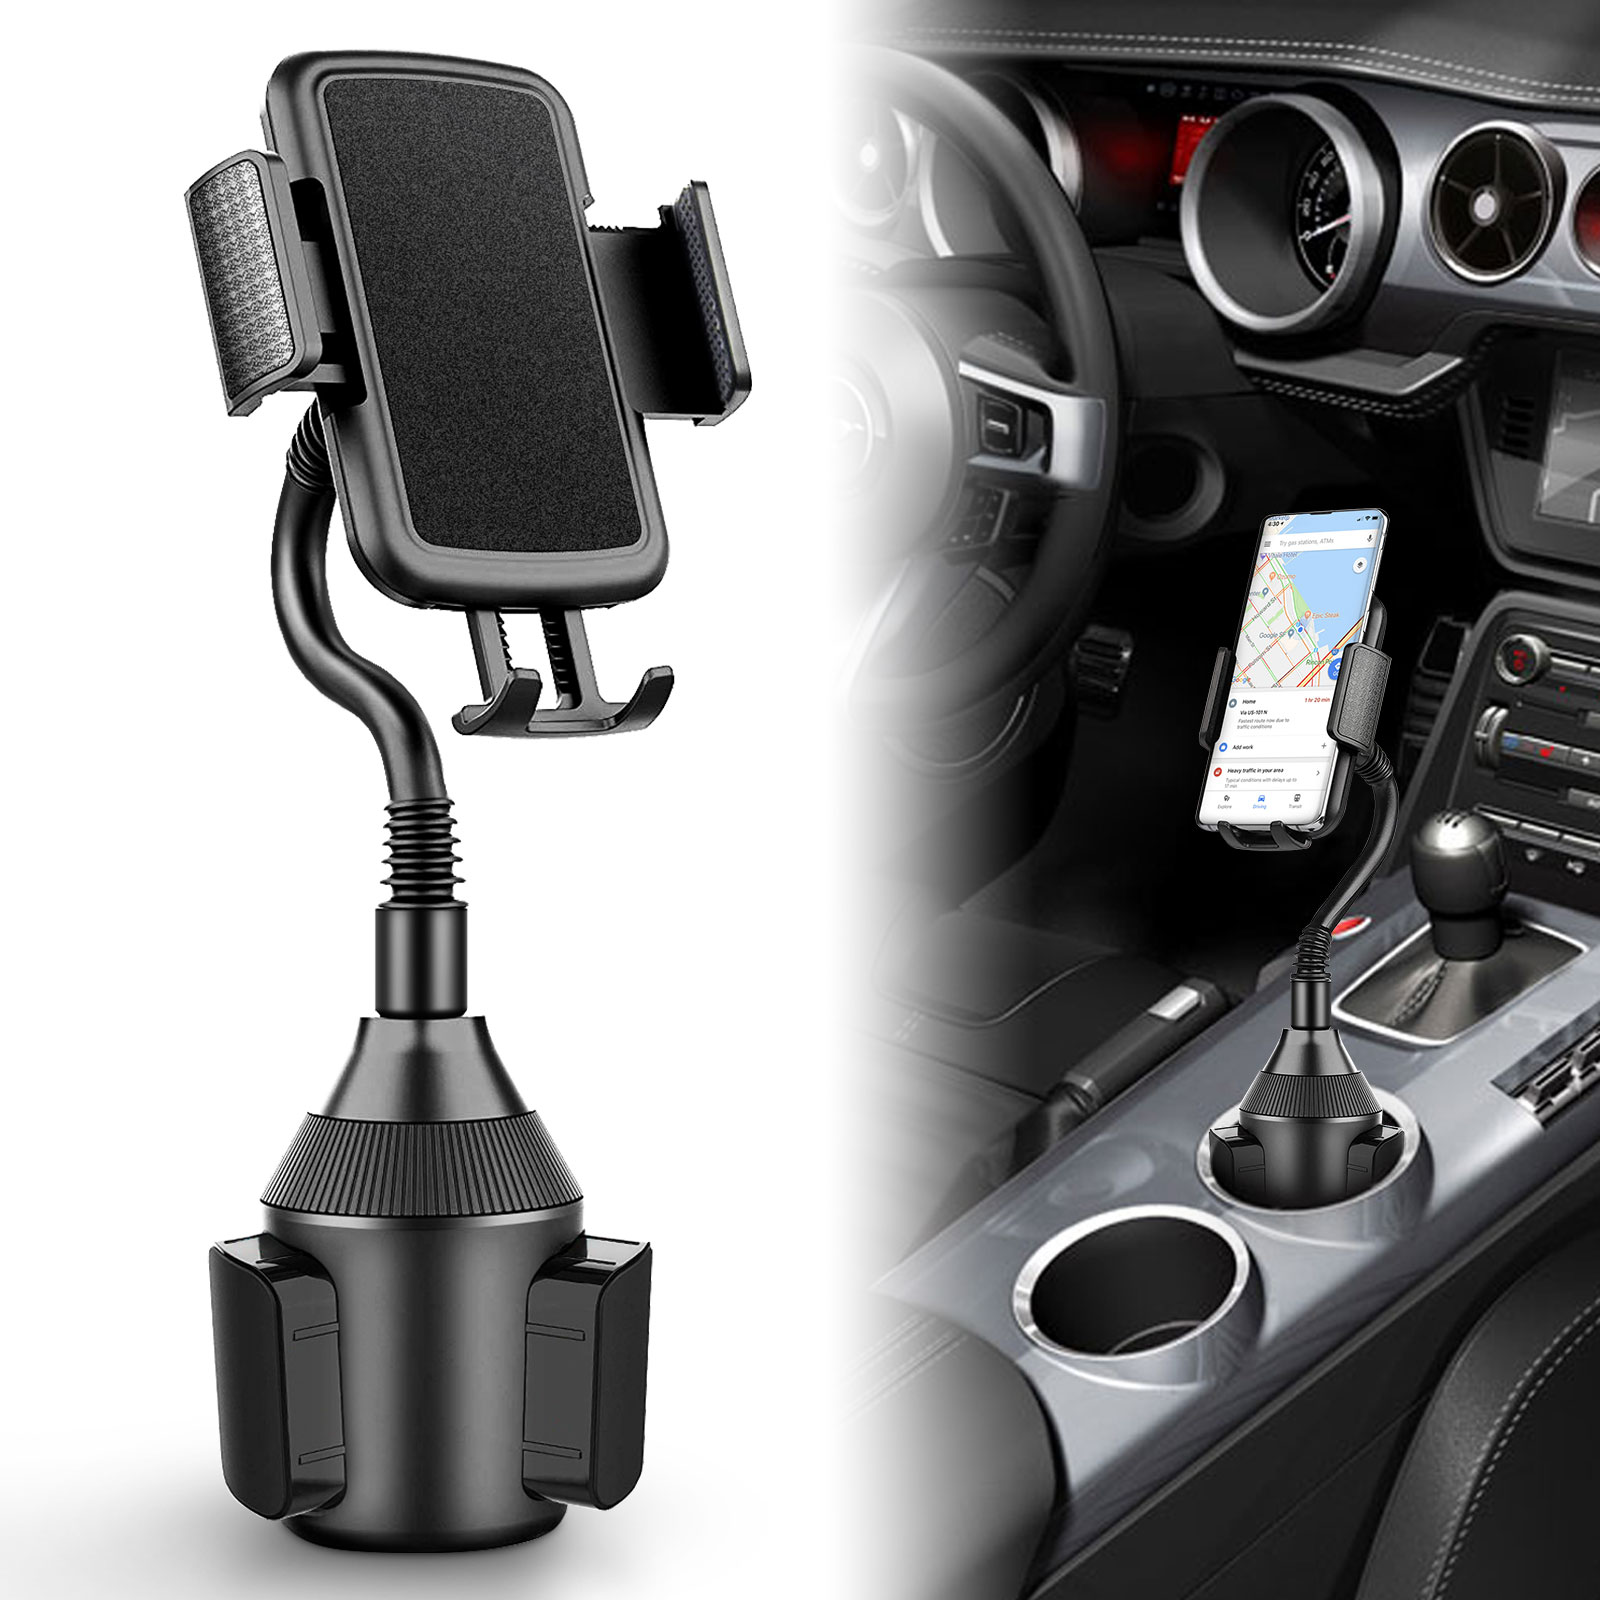 360 Degree Rotation Car Center Console Dual Cup Holder Car Cup Holder Expander for Car Vehicles Black